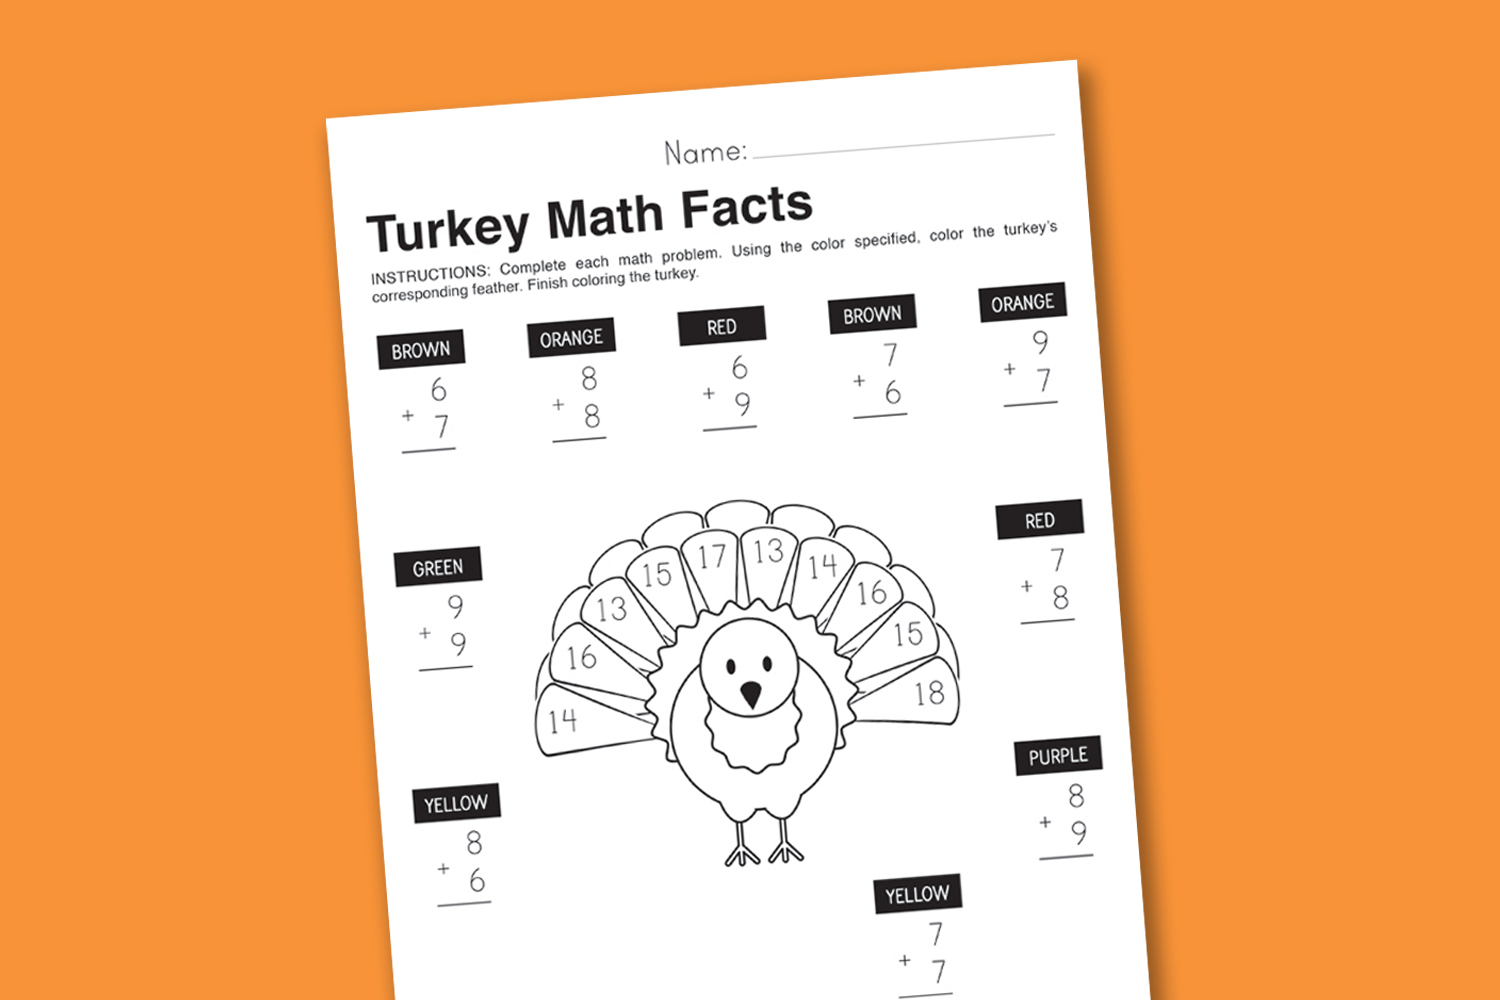 Worksheet 12241584 Thanksgiving Math Worksheets Middle School – Thanksgiving Math Worksheets Middle School